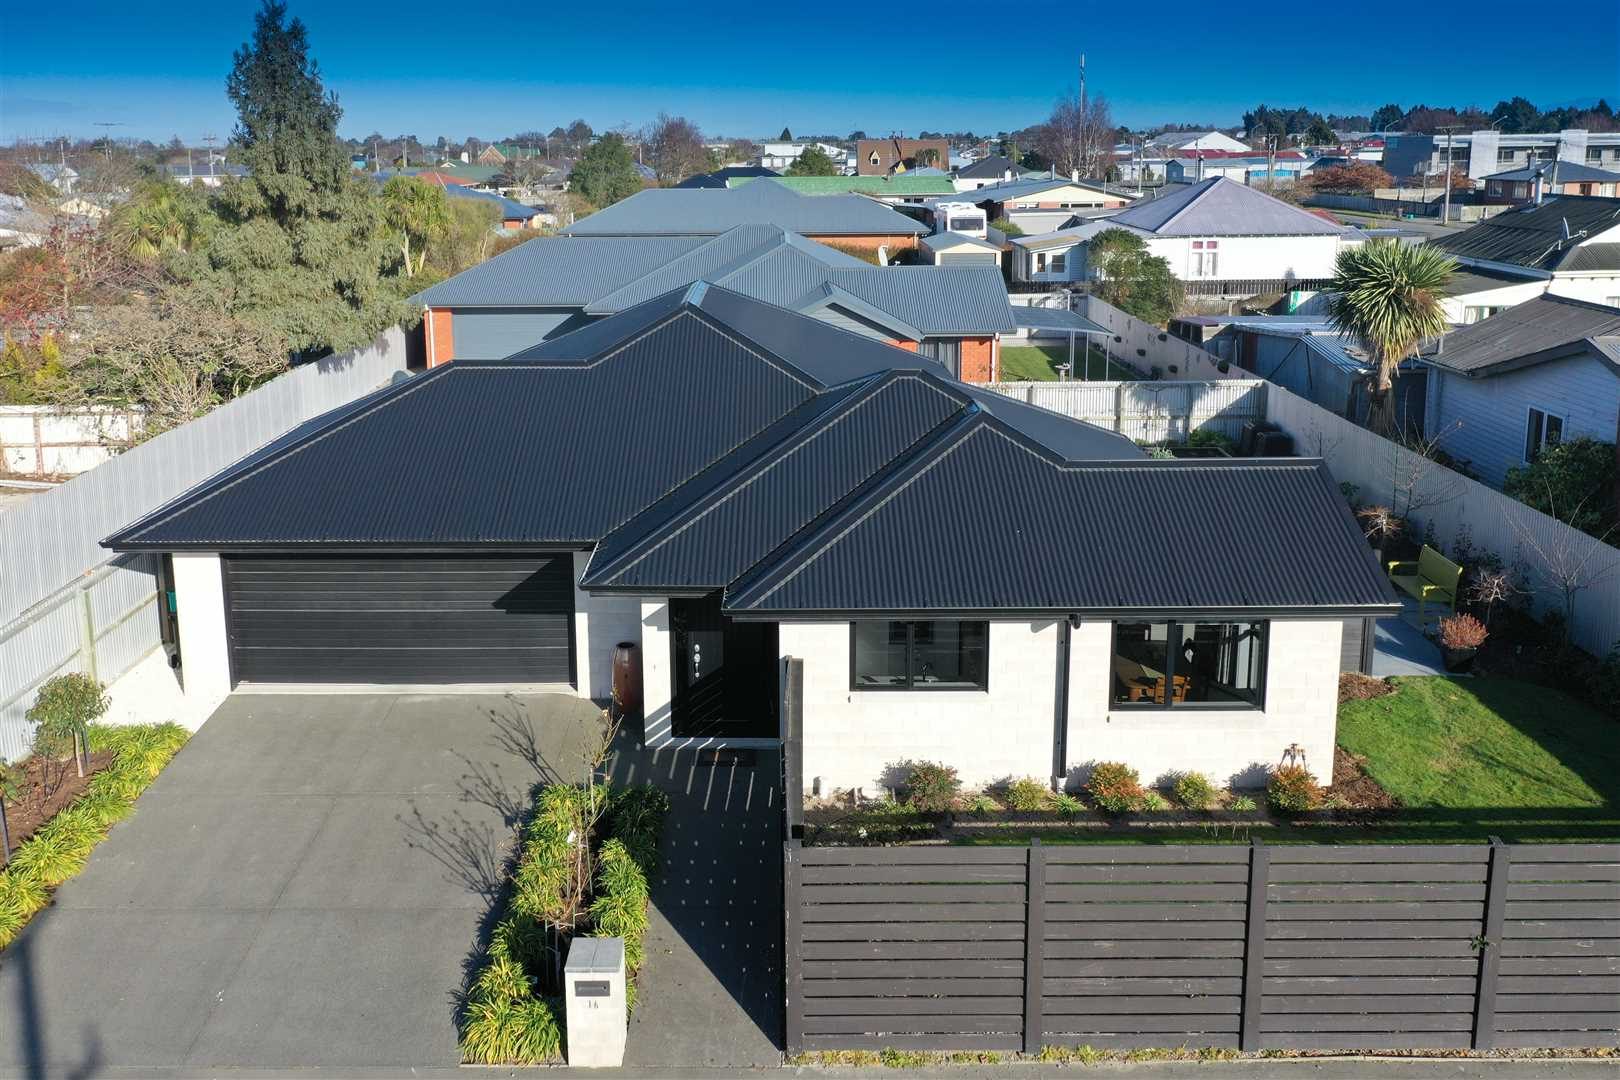 Townhouse Supreme Ticks All The Boxes